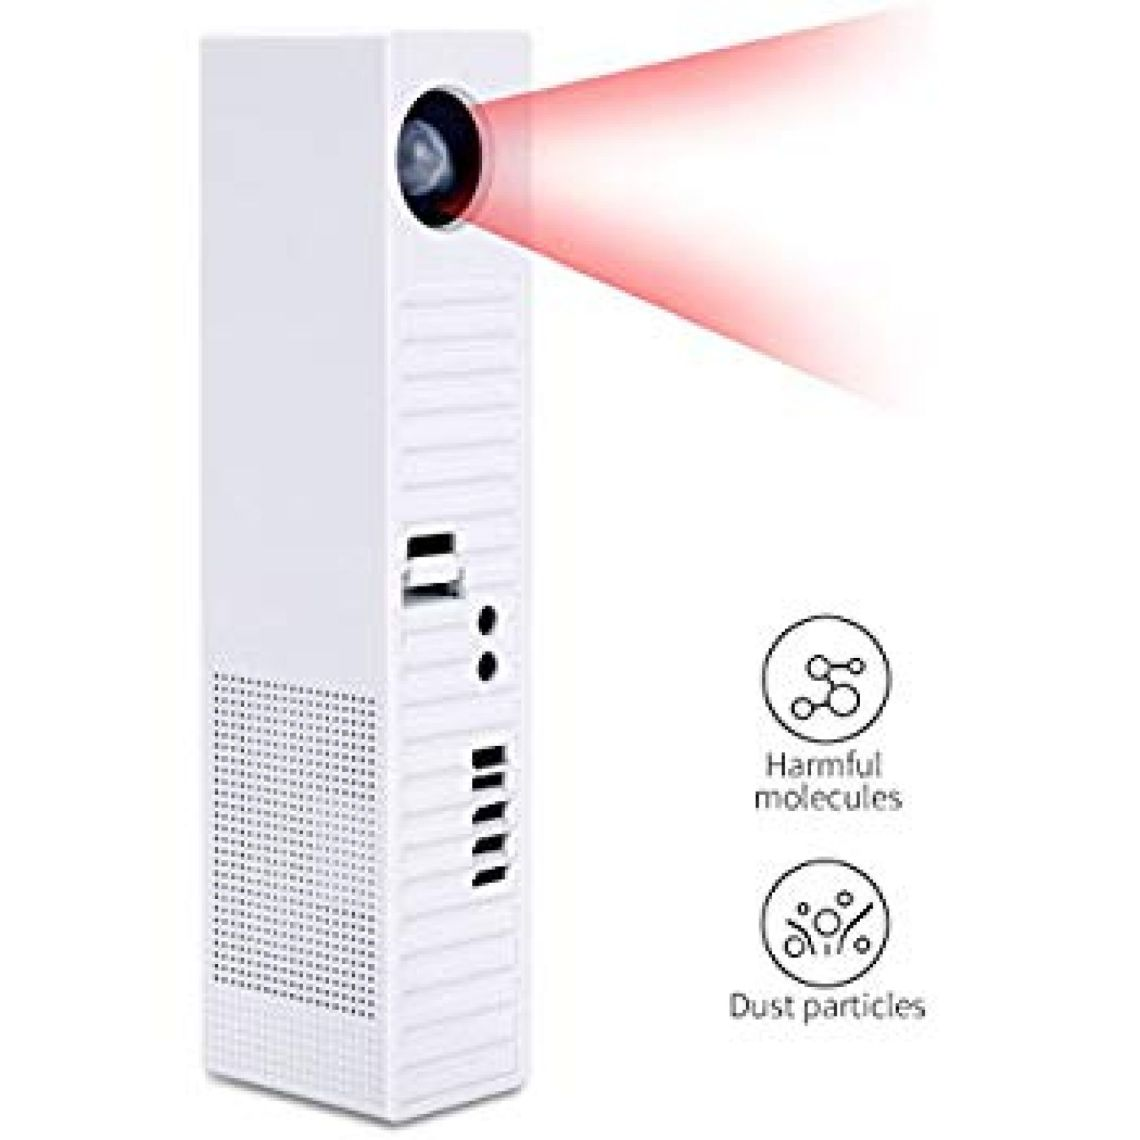 Amazon.com: XUANRUS HEPA Air Purifier - Air Ioniser,Air Cleaning, Air Cleaner,Portable Ionic Activated Carbon Filter Perfect for Allergy Sufferers, Smoking and Dust Mite Allergy on Pet House: Home & Kitchen